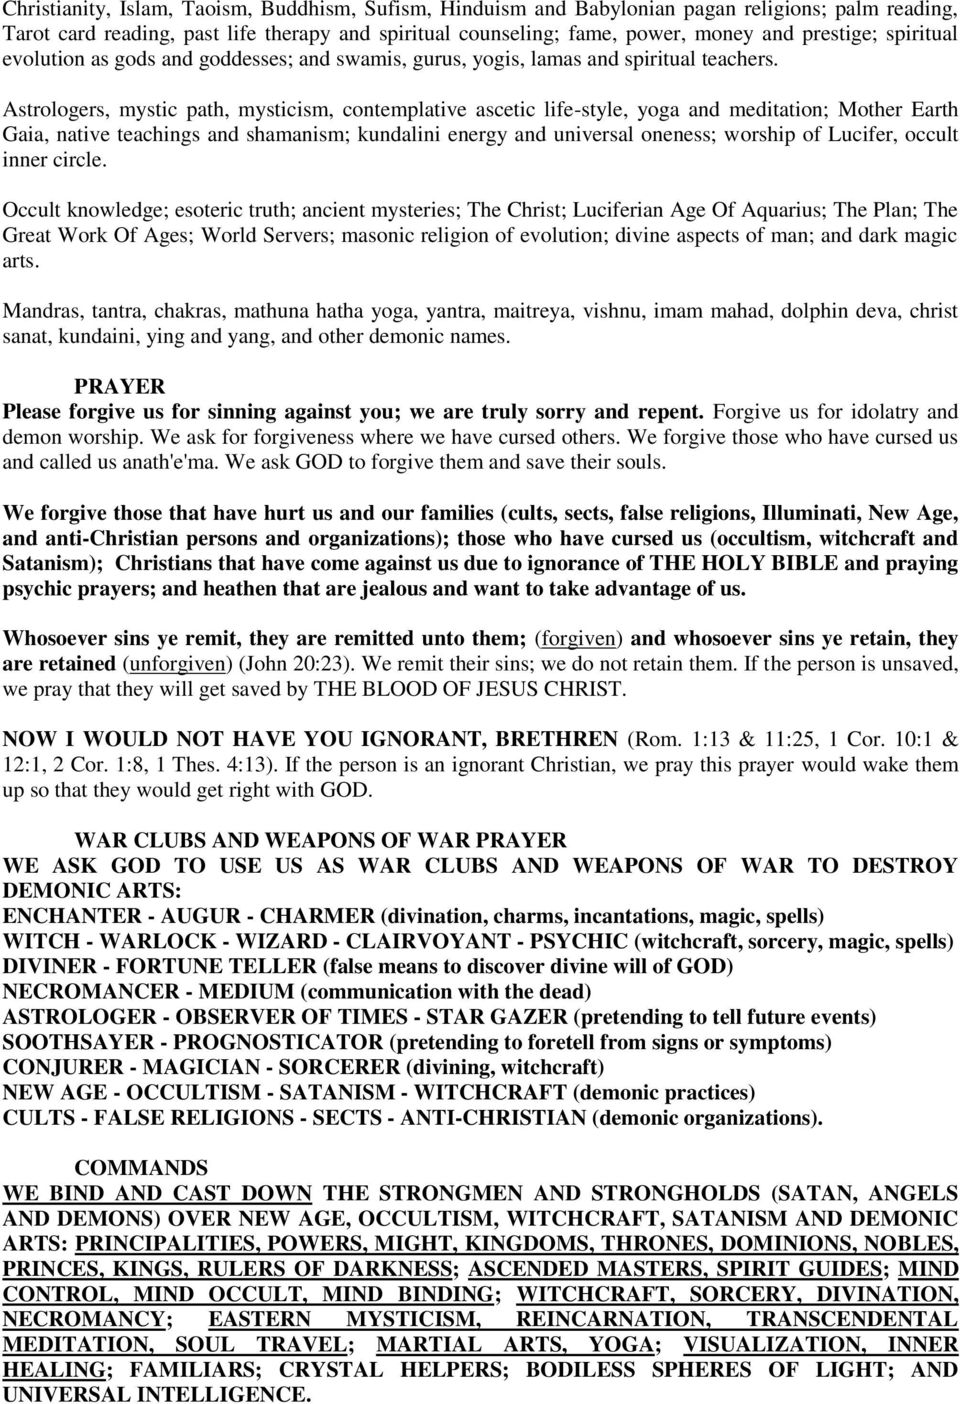 Witchcraft deliverance manual -2 (part 2) - PDF